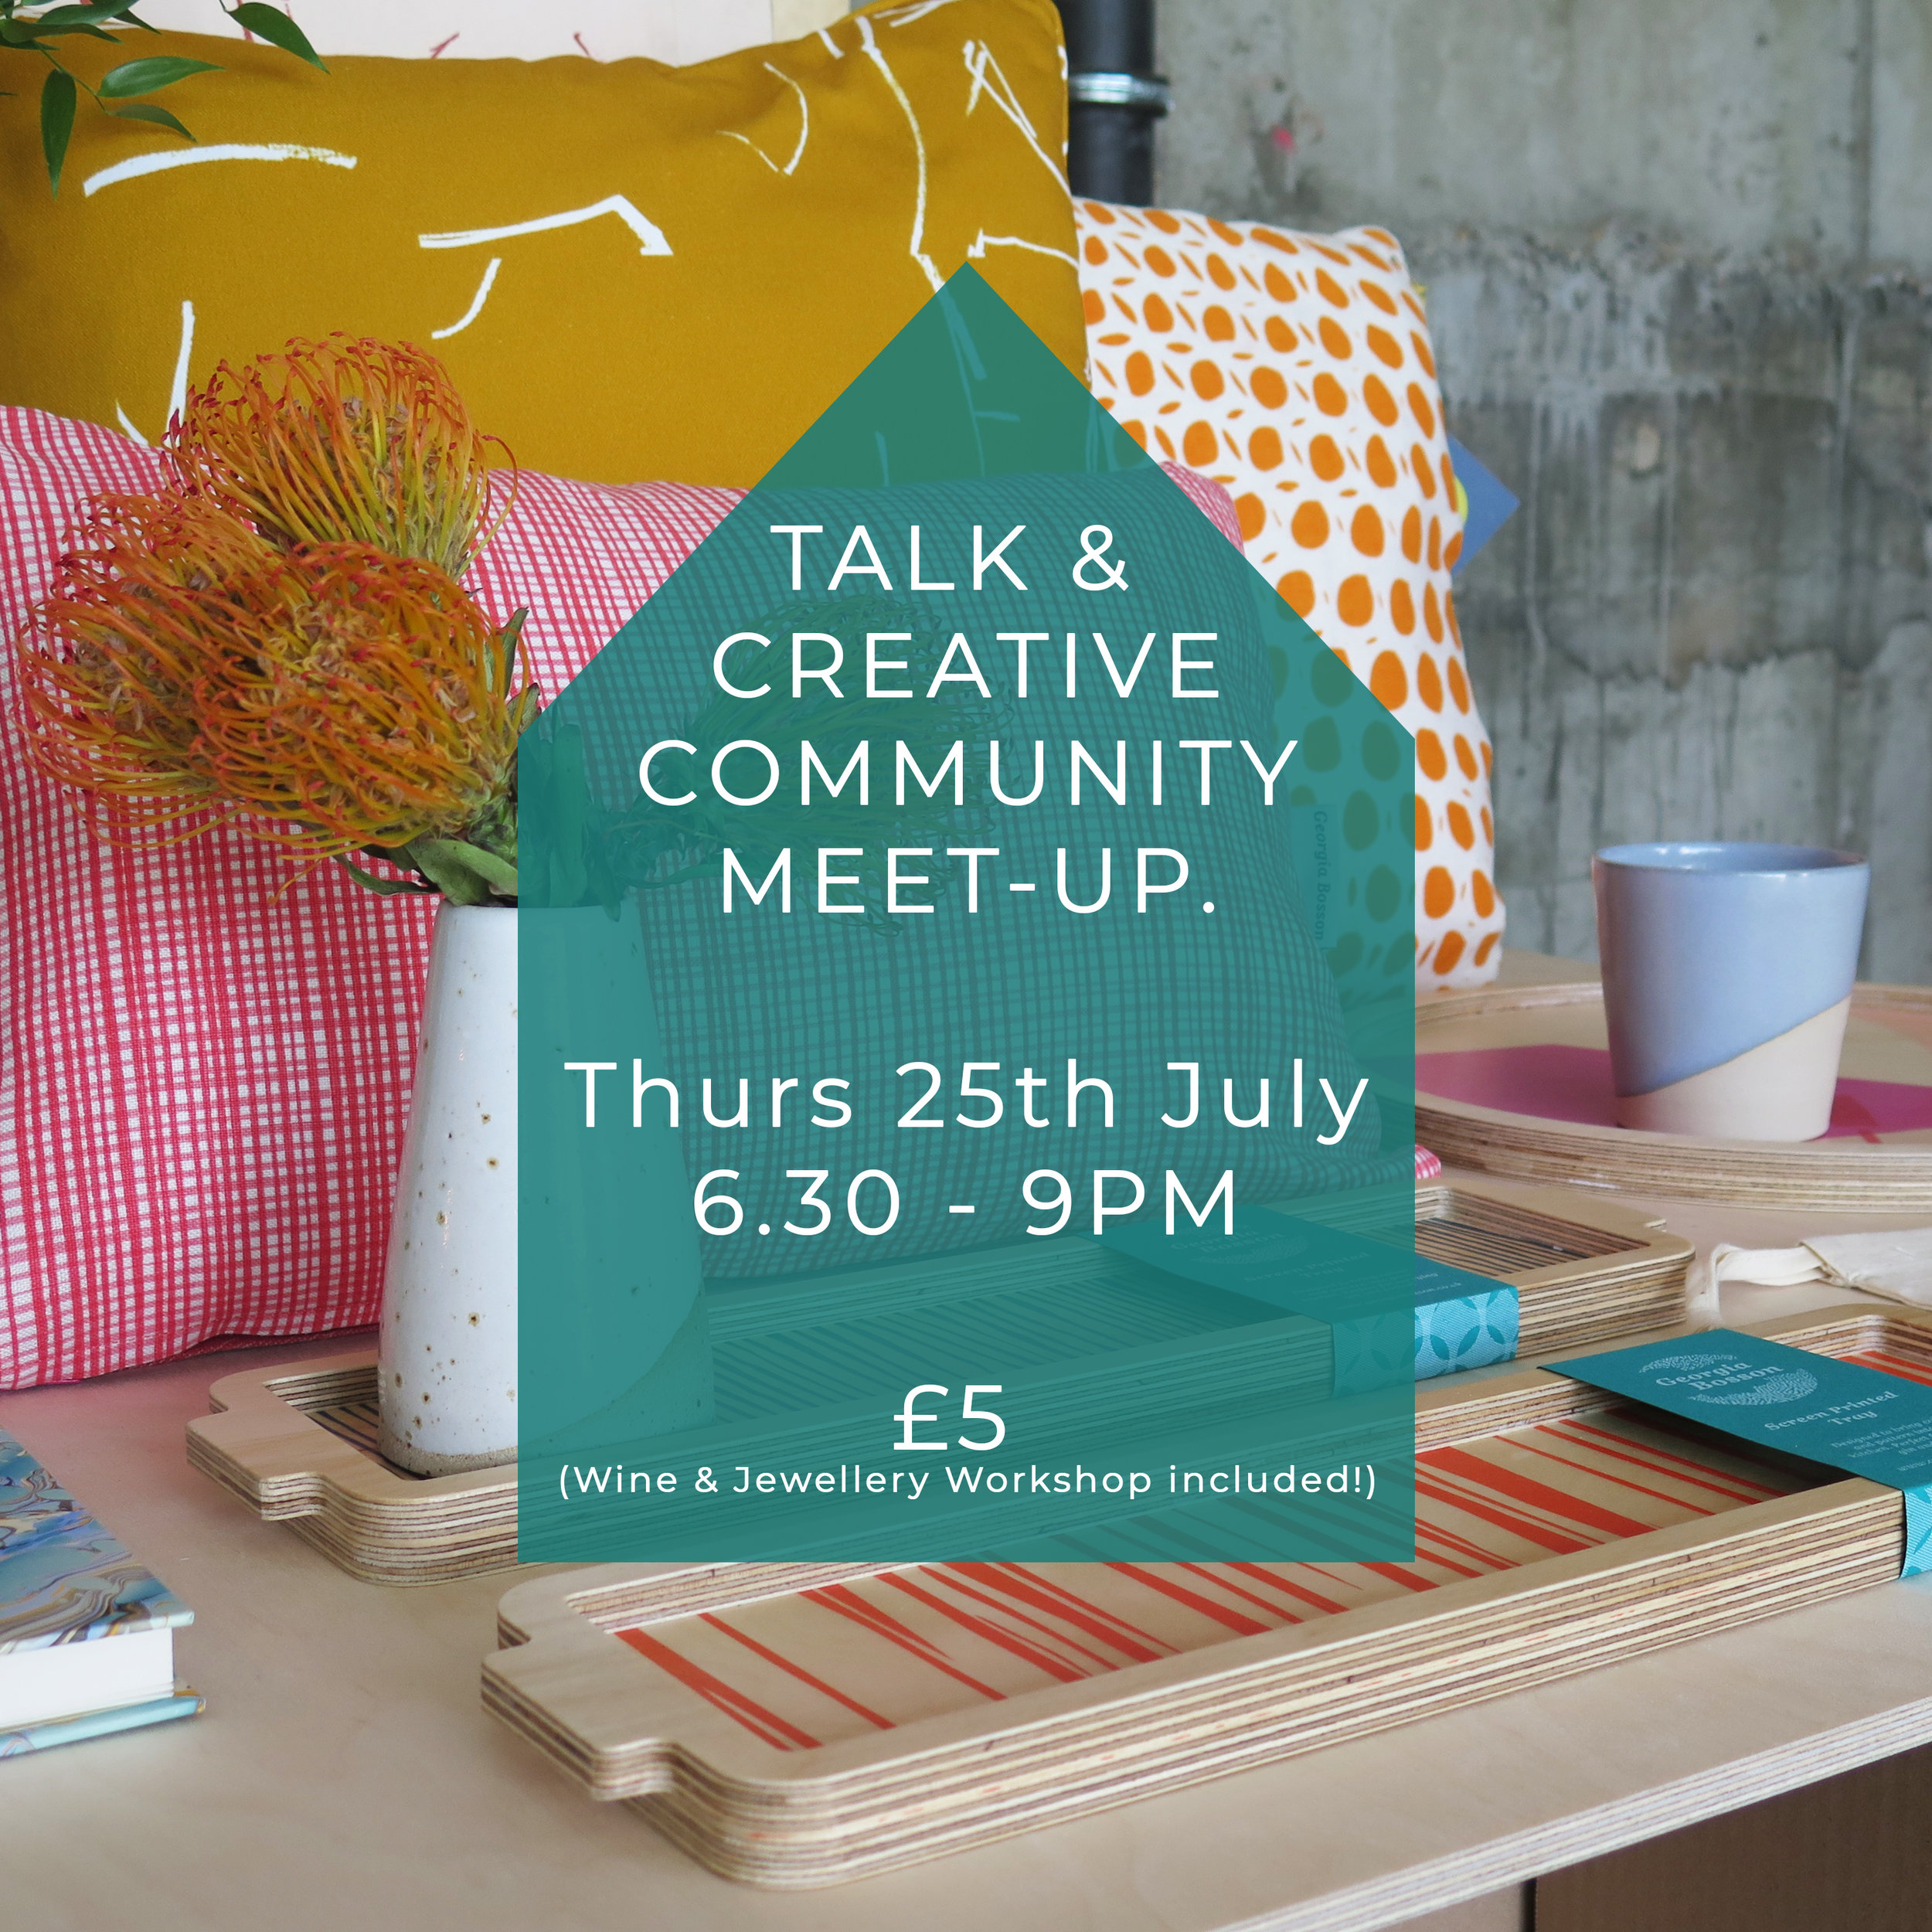 25th July; opening night with a panel discussion and networking event   https://www.eventbrite.co.uk/e/makers-house-colour-stories-panel-discussion-networking-workshops-tickets-64797053732